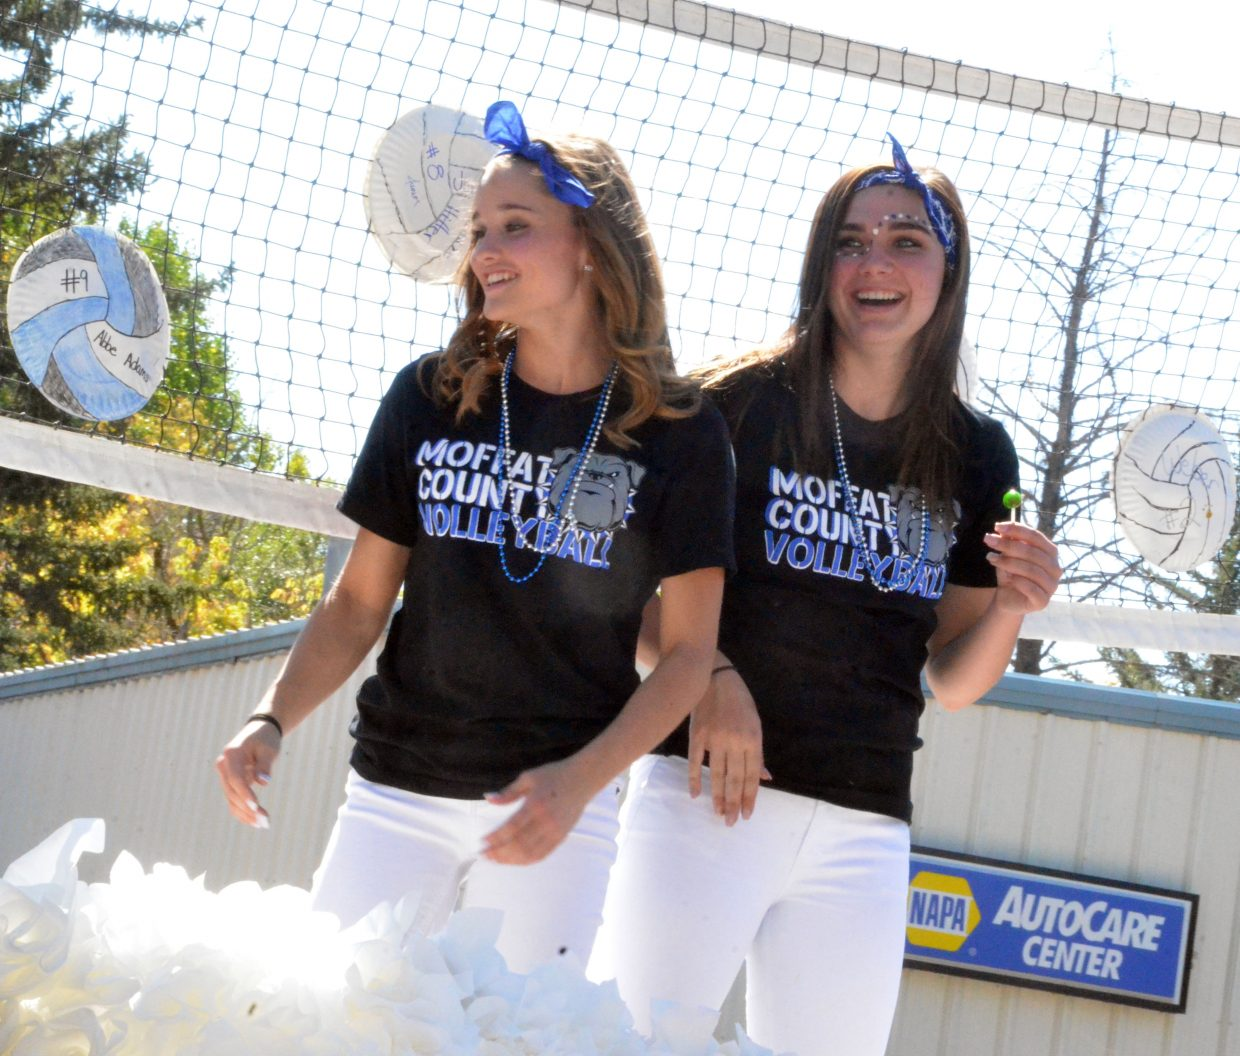 Bulldog volleyball players Stephenie Swindler and Jenna Timmer share a laugh on a float in the Moffat County High School Homecoming parade Friday.